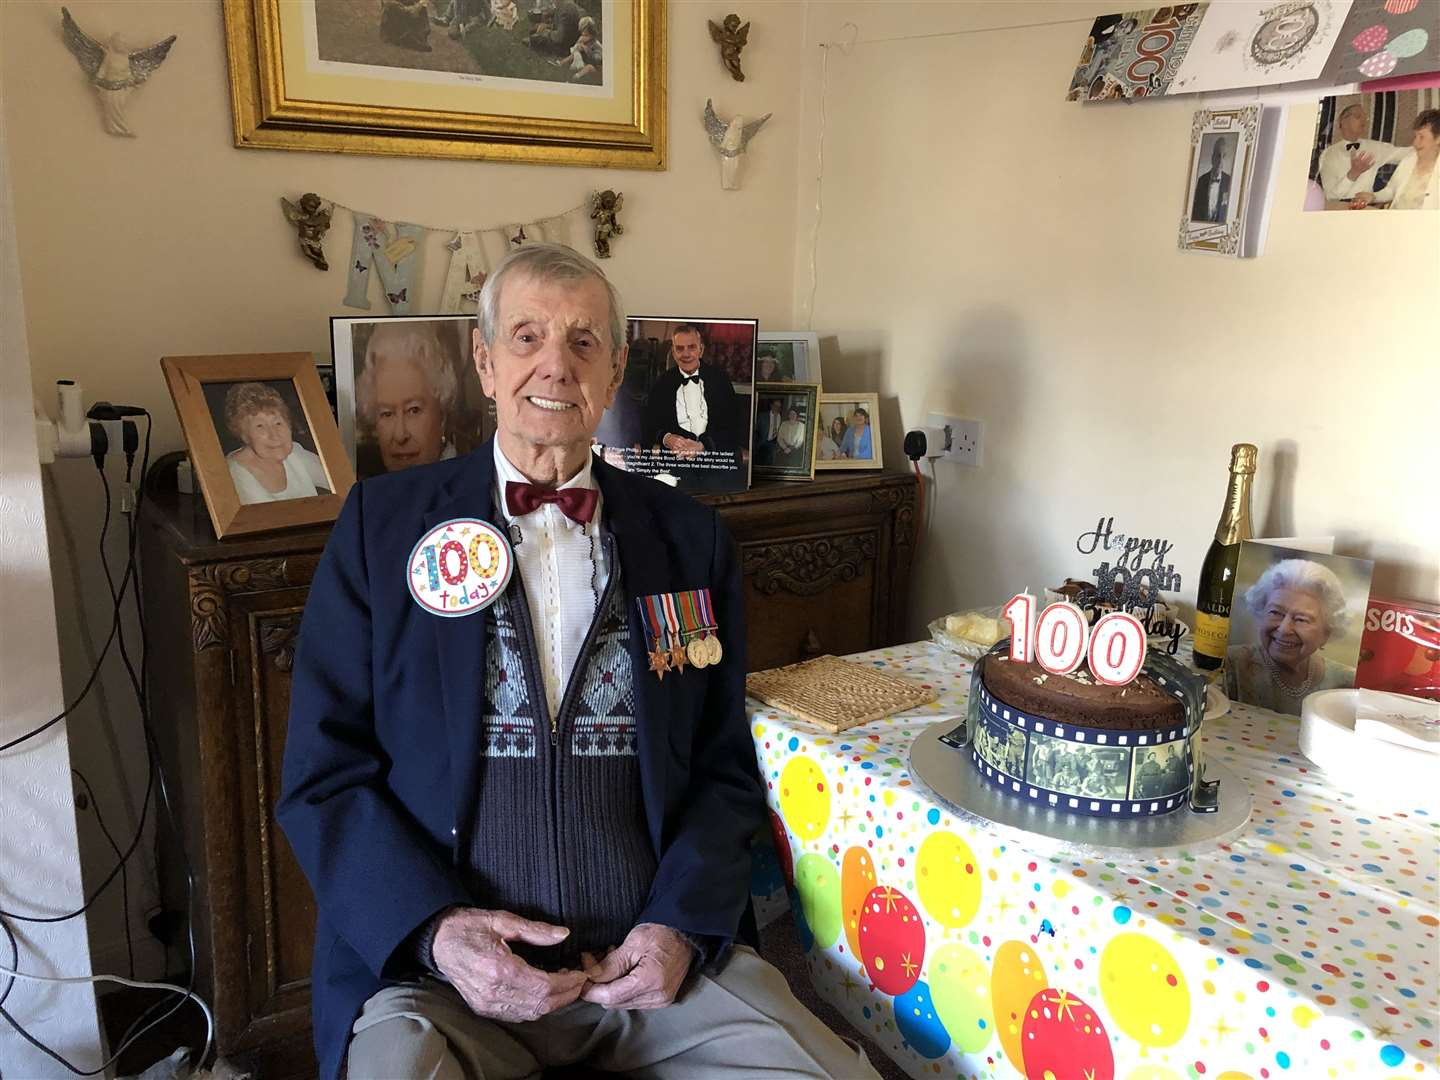 Charlie Pallett with his 100th birthday cake